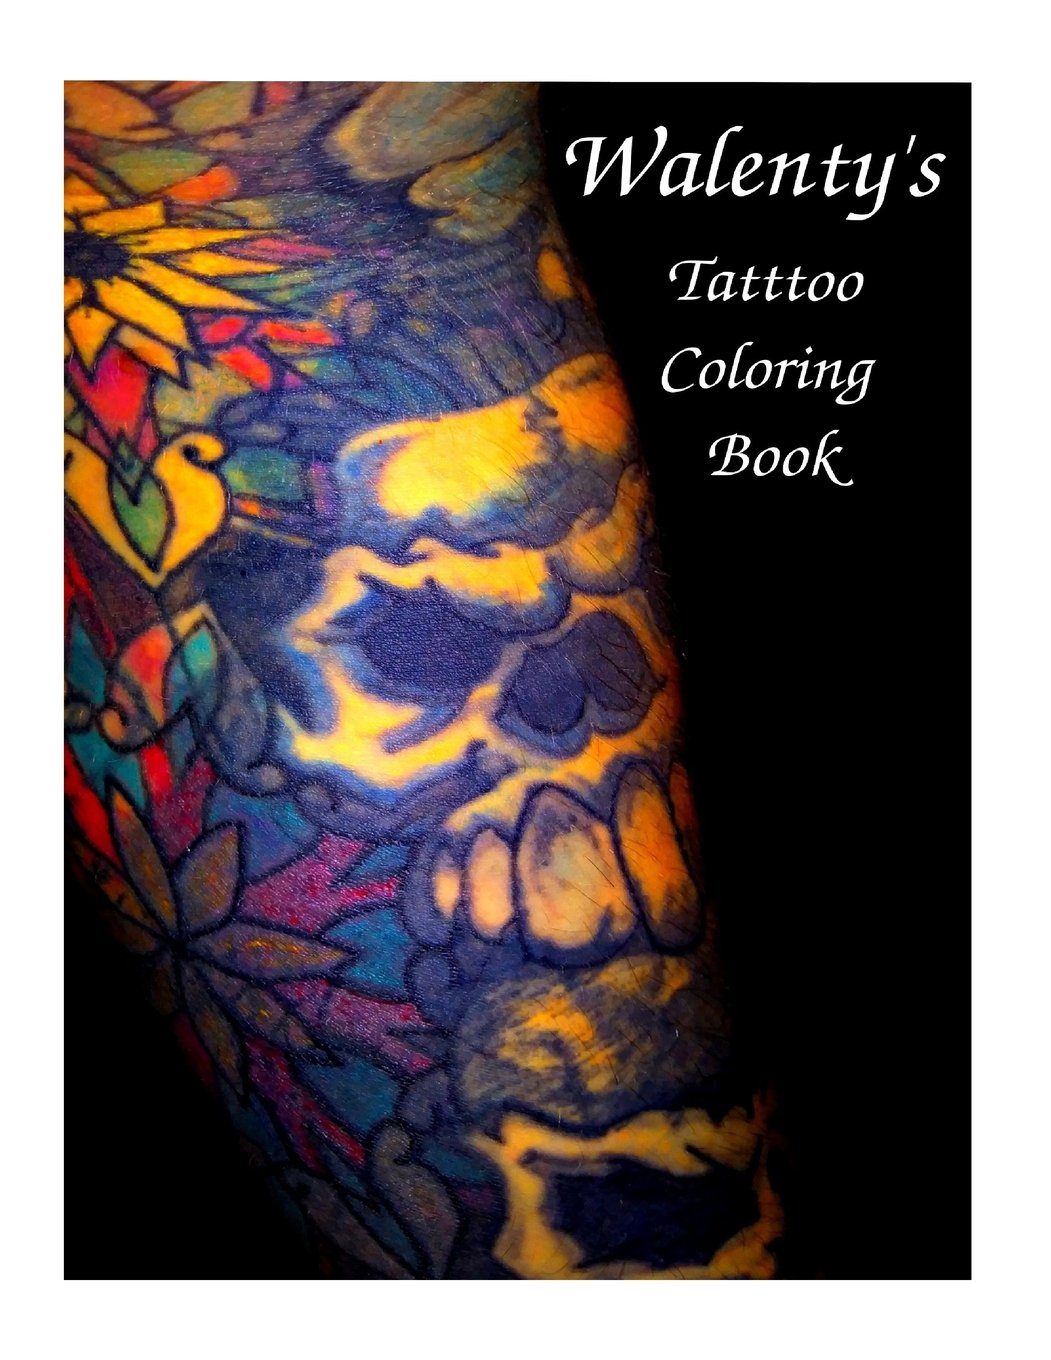 Walenty's Tattoo Coloring Book